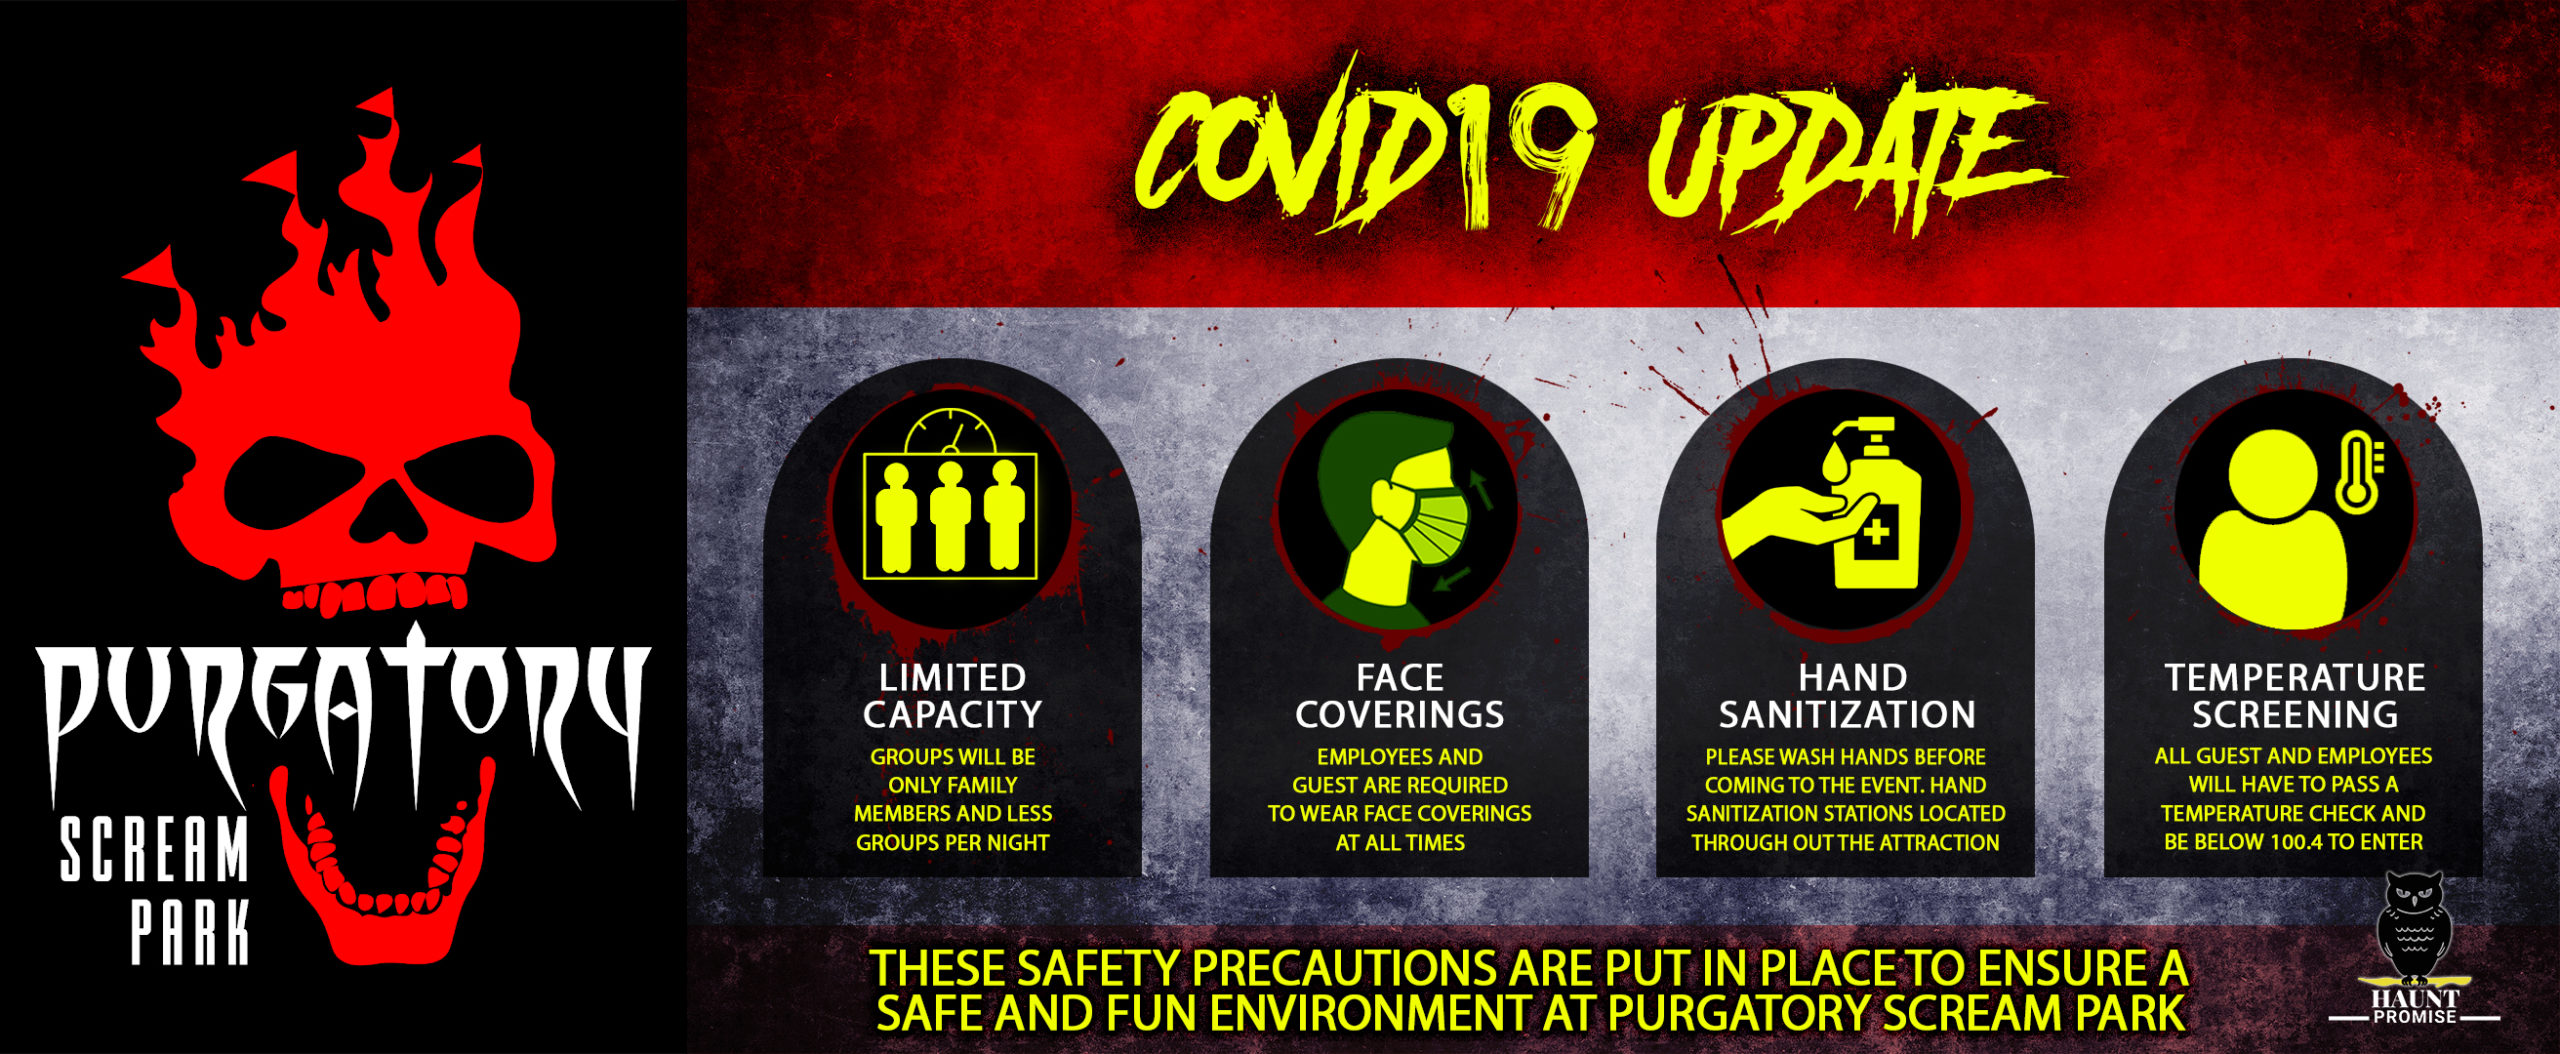 "This is a banner detailing safety precautions for the 2020 Haunted House season titled, ""Covid 19 Update."" The side of the banner has the red and white Purgatory Scream Park skull logo. The center of the banner has four illustrations with captions on each. The first illustration is a box with three people figures inside. Underneath the image states ""limited capacity, groups will be only family members and less groups per night. The second image is of a person's face covered with a surgical type mask. Underneath the image states, ""employees and guests are required to wear face coverings at all times. The third image is of a hand and a bottle of hand sanitizer. Beneath the image states, ""hand sanitization, Please wash hands before coming to the event. Hand sanitization stations located throughout the attraction."" The fourth and last image is of a person shape next to a thermometer. Under the image it states, ""Temperature screening, all guests and employees will have to pass a temperature check and be below 100.4 to enter. At the bottom of the banner it says,""These safety precautions are put in place to ensure a safe and fun environment at purgatory scream park. The bottom corner has a small image of an owl above the words, ""Haunt Promise."""